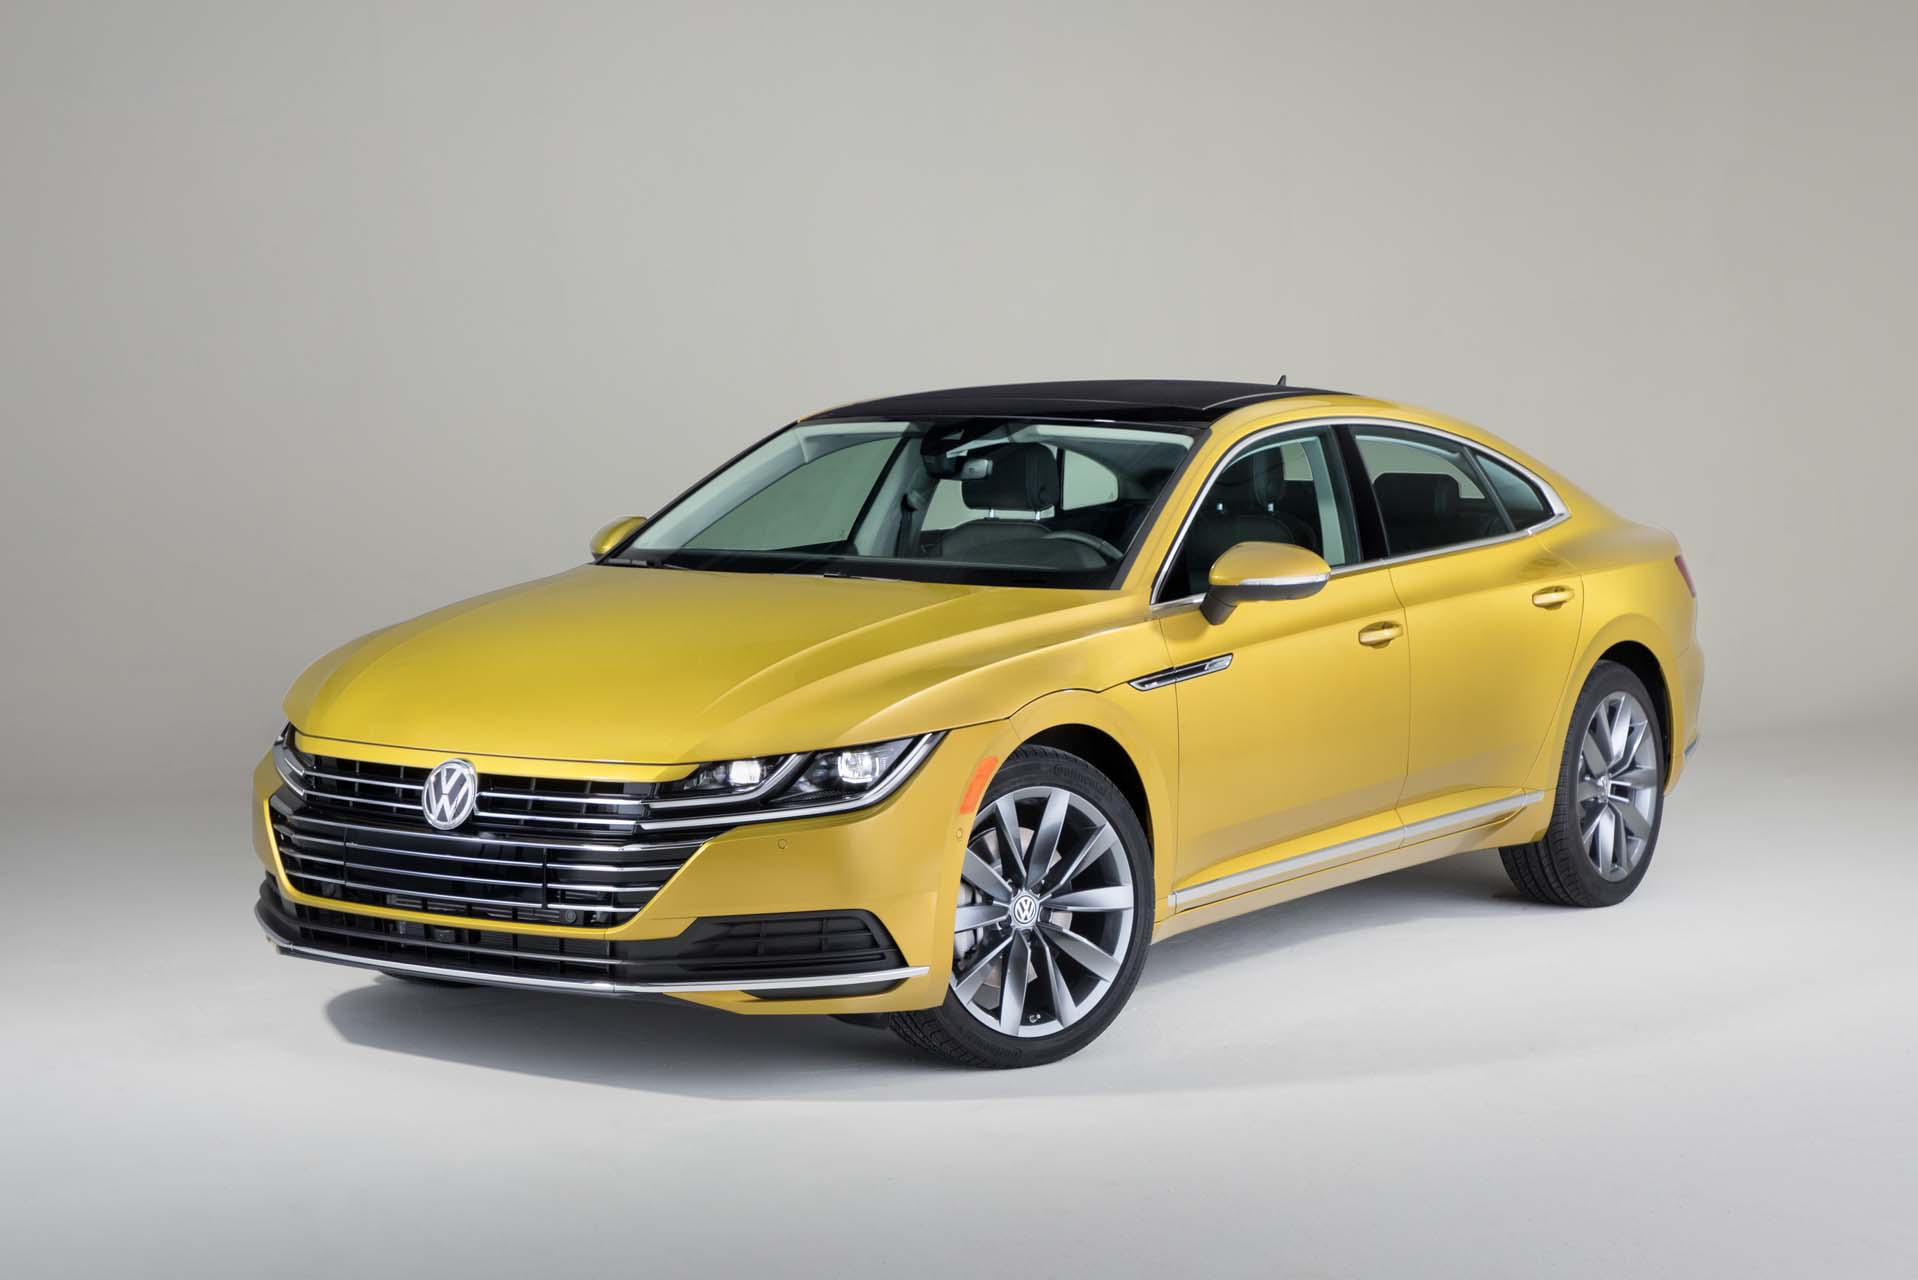 2019 Volkswagen Arteon Dashes To The US With More Space